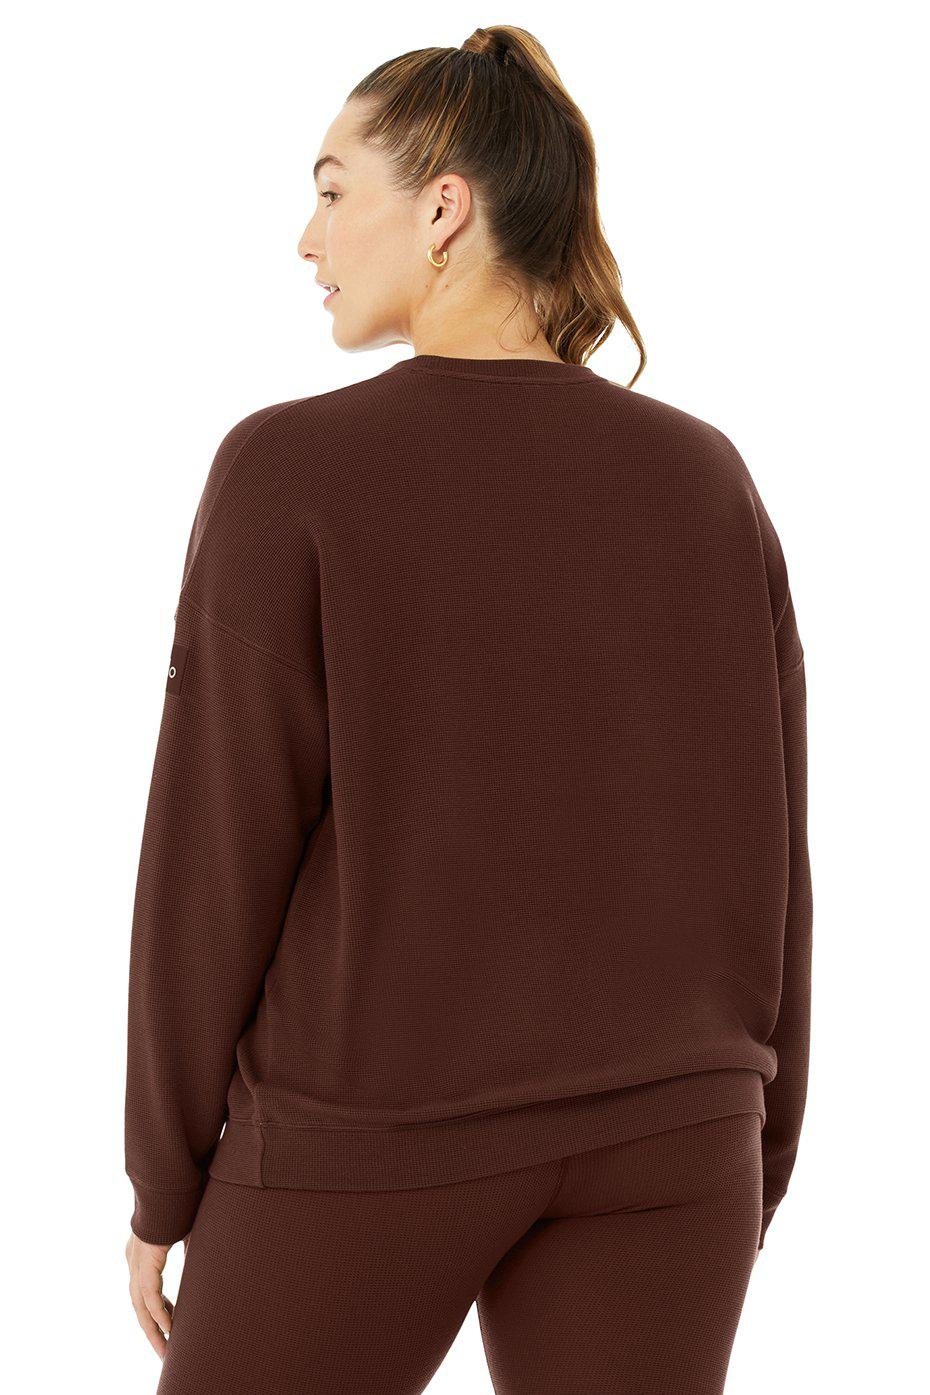 Micro Waffle Relaxation Pullover - Cherry Cola 5